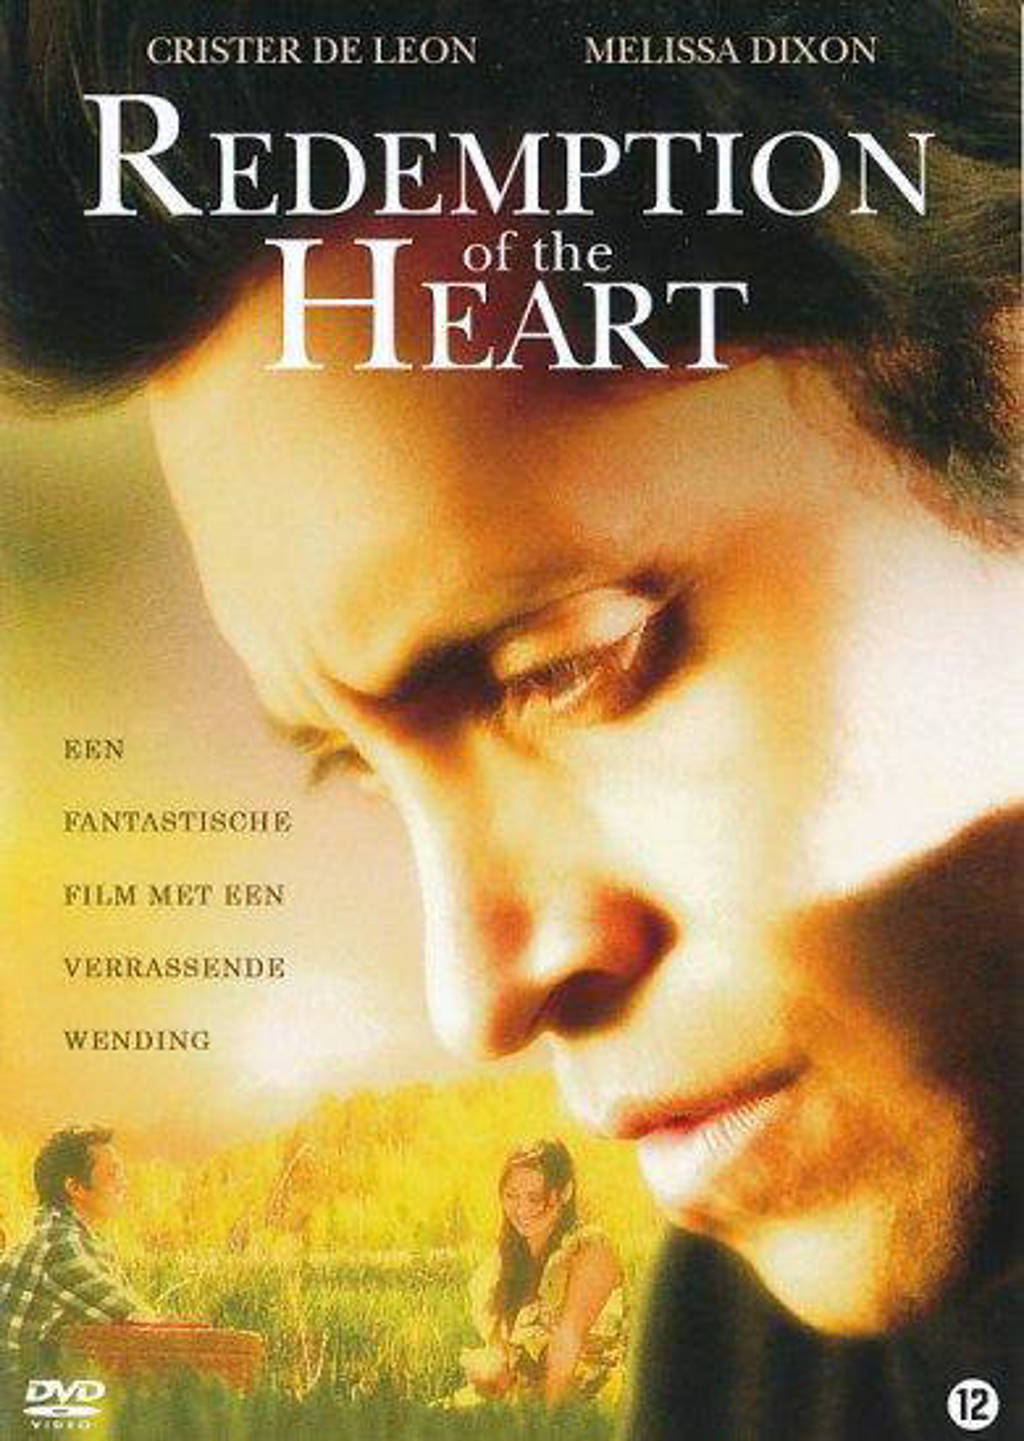 Redemption of the heart (DVD)